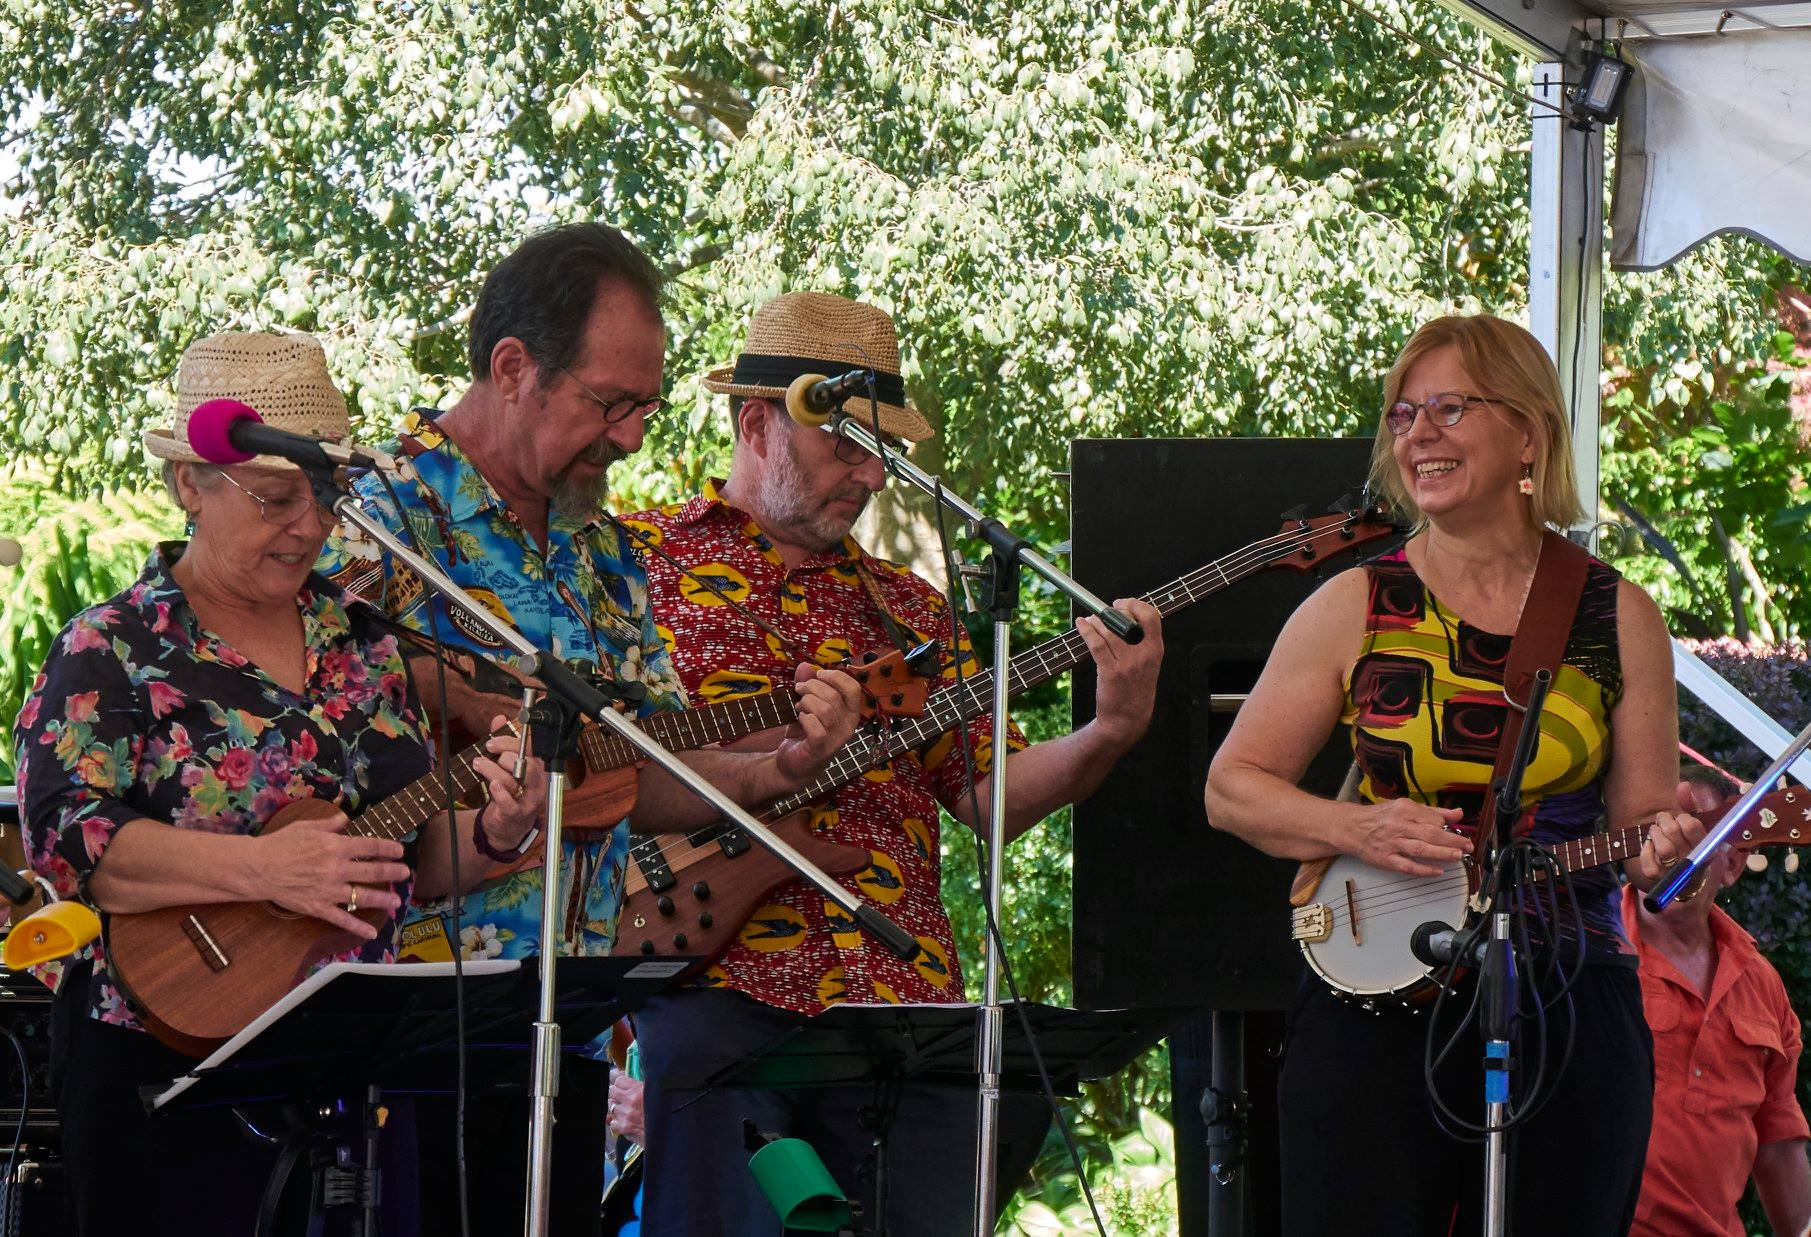 The Ukulele Republlic of Canberra performing at the Blue Mountains Ukulele Festival in February 2018 -